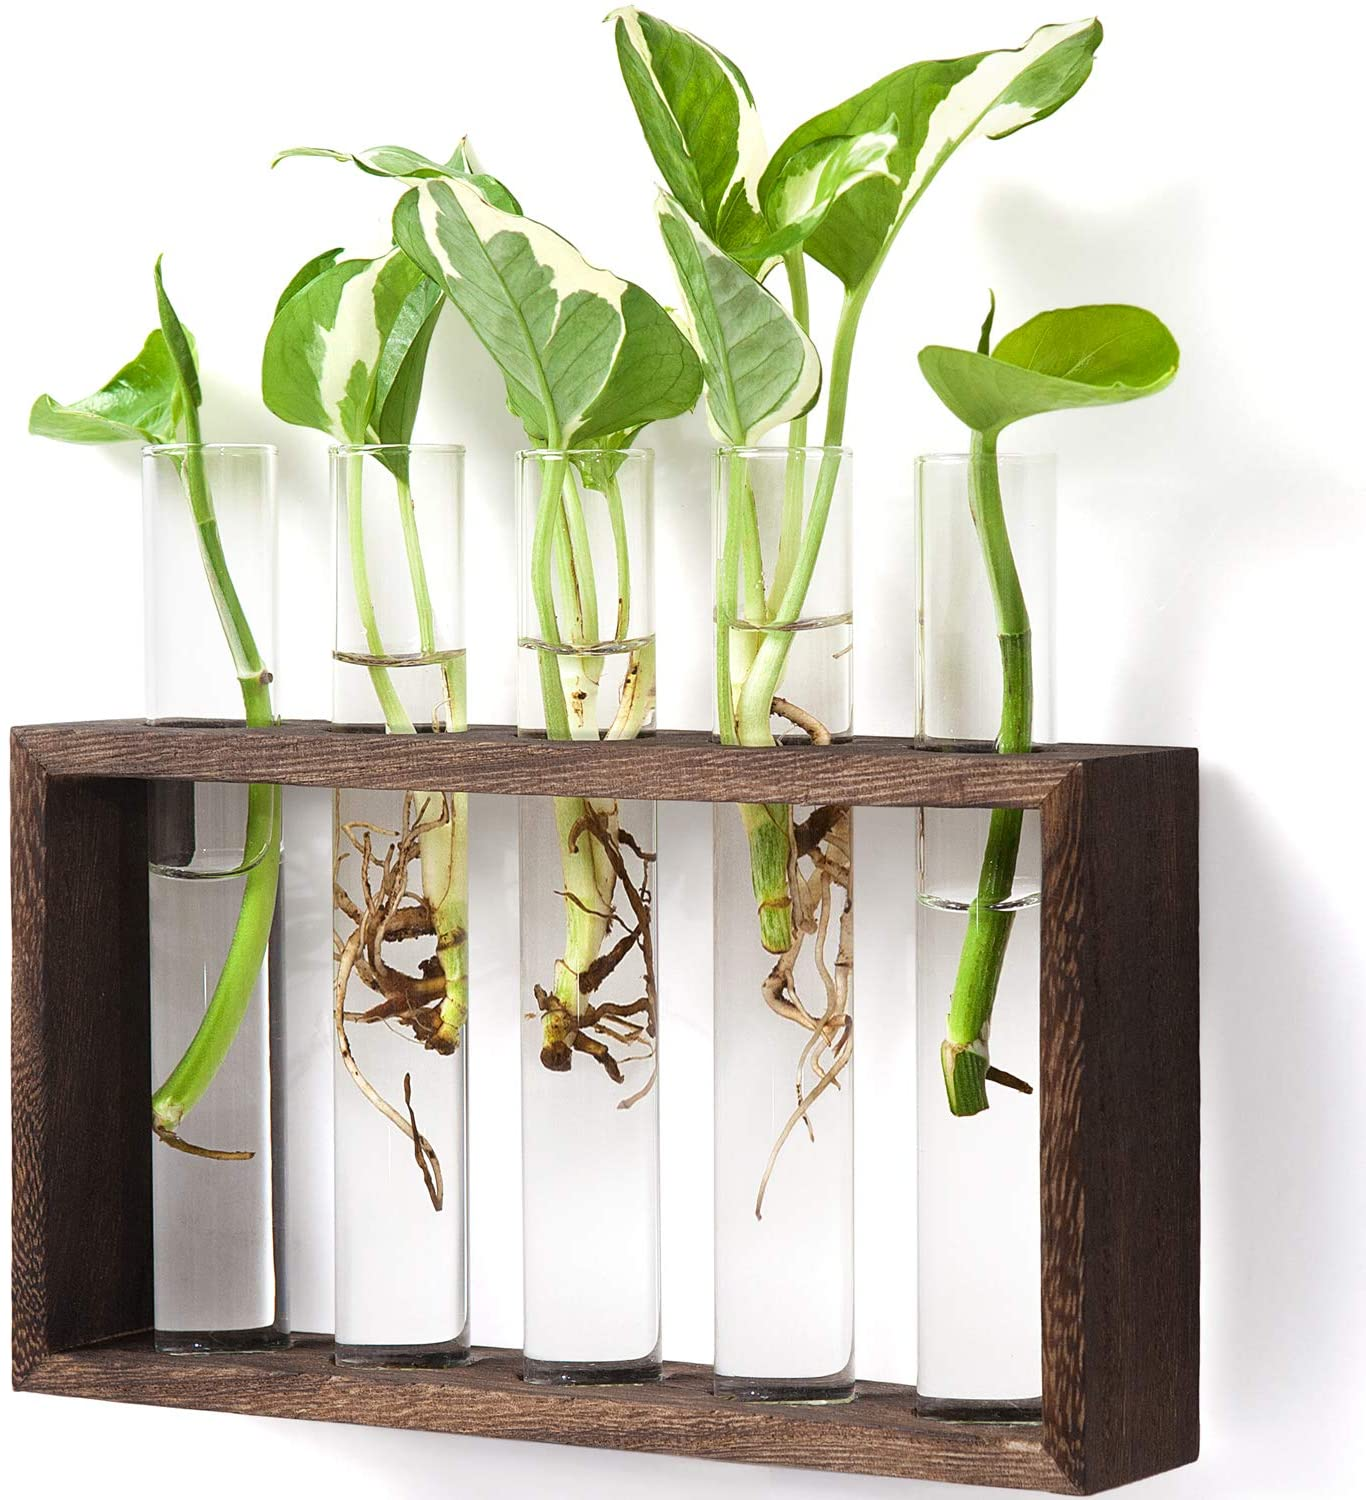 Mkono Wall Hanging Glass Planter Modern Flower B Plant Inventory cleanup Very popular! selling sale Terrarium